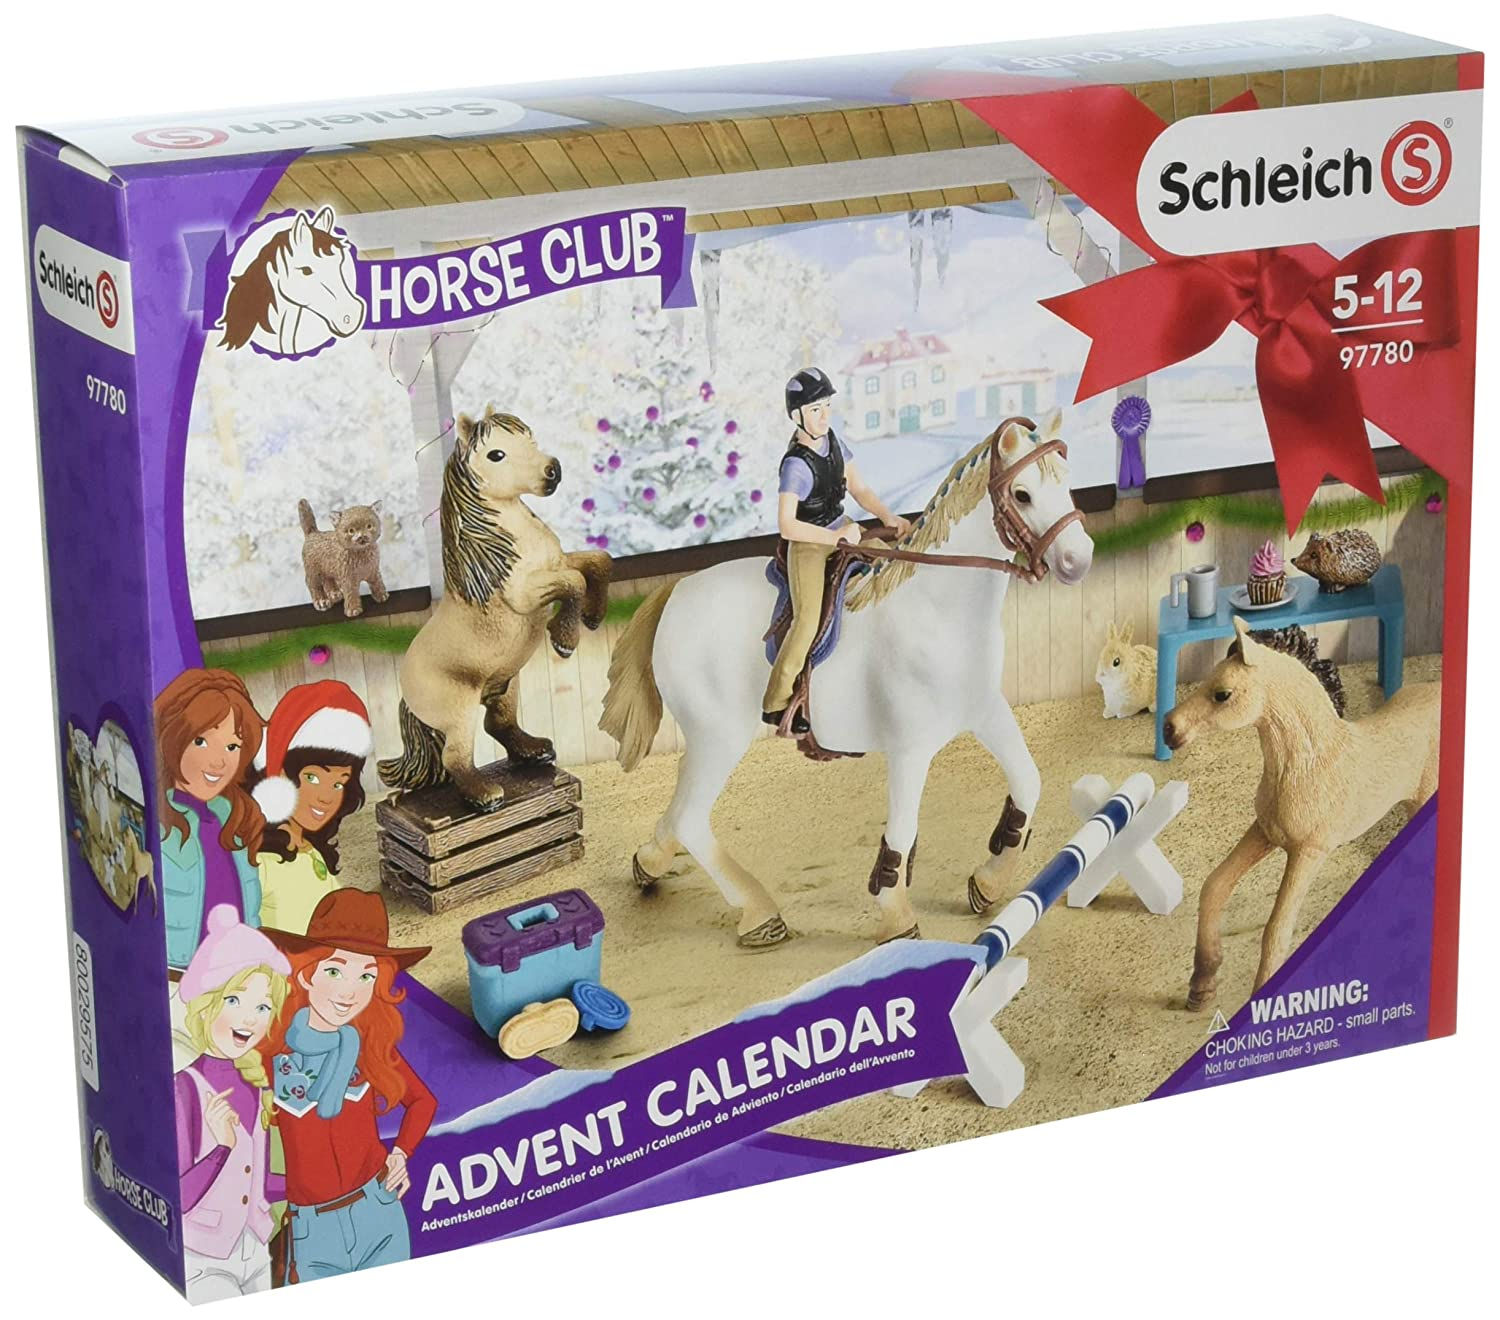 Schleich 97780 - Horse Club Advent Calendar 2018